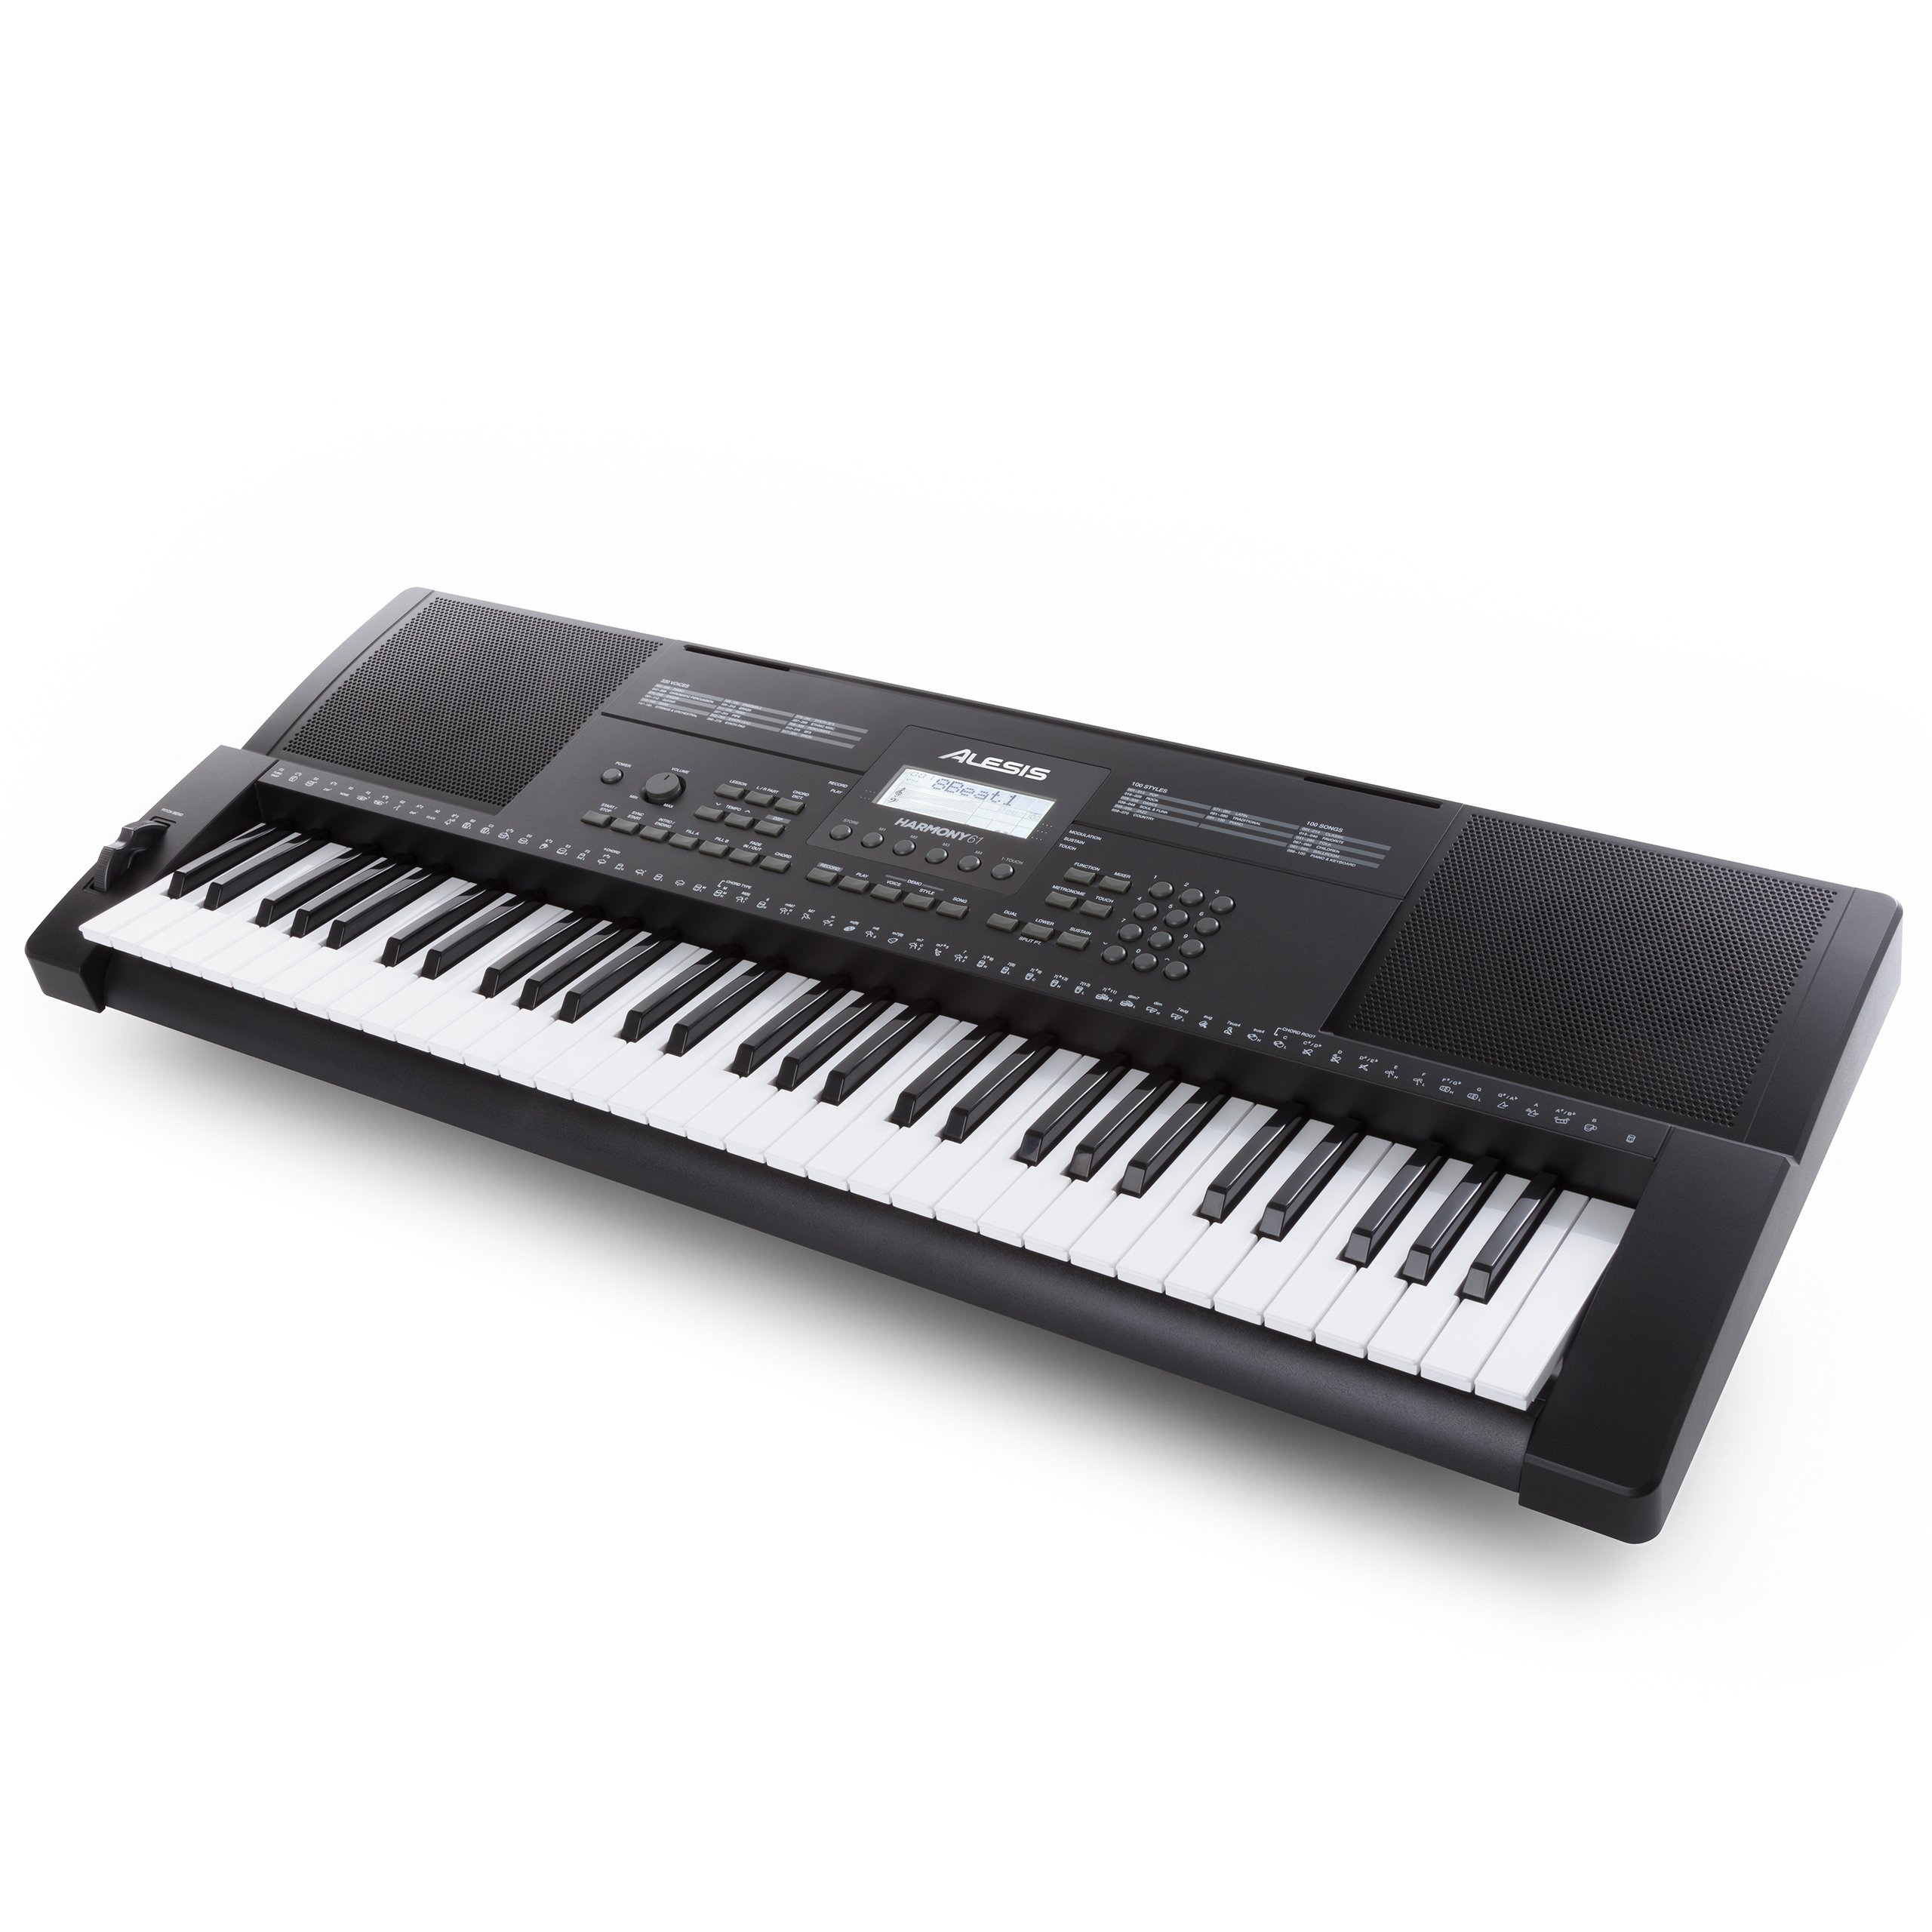 Alesis Harmony 61 - 61 Key Ultra-Portable Keyboard With Velocity-Sensitive Keys, Built-in Speakers, 300+ In-Demand Sounds and 3-Month Skoove Premium Subscription